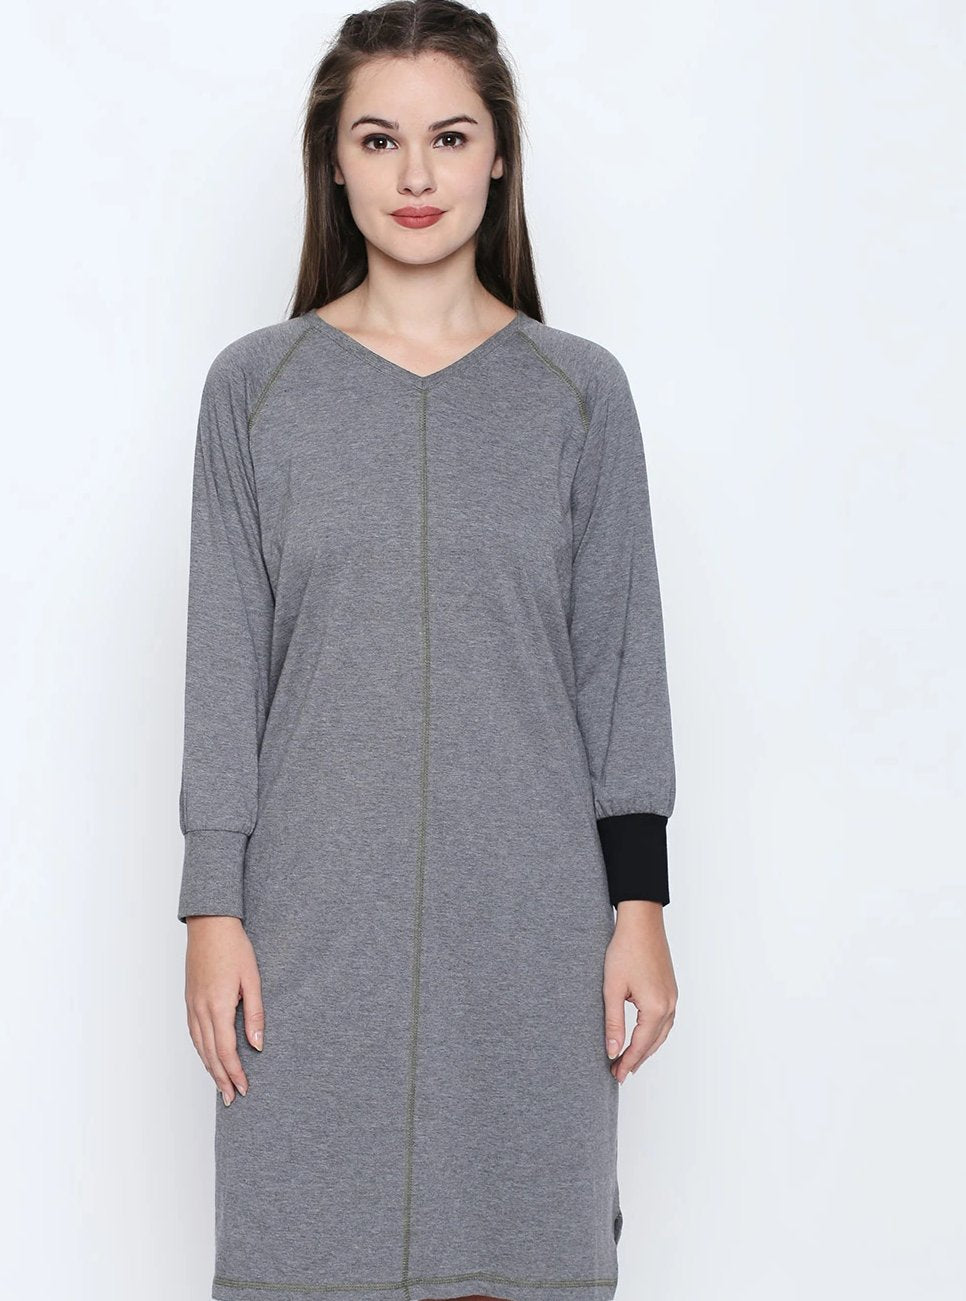 Disrupt Grey Cotton Full Sleeve Dress